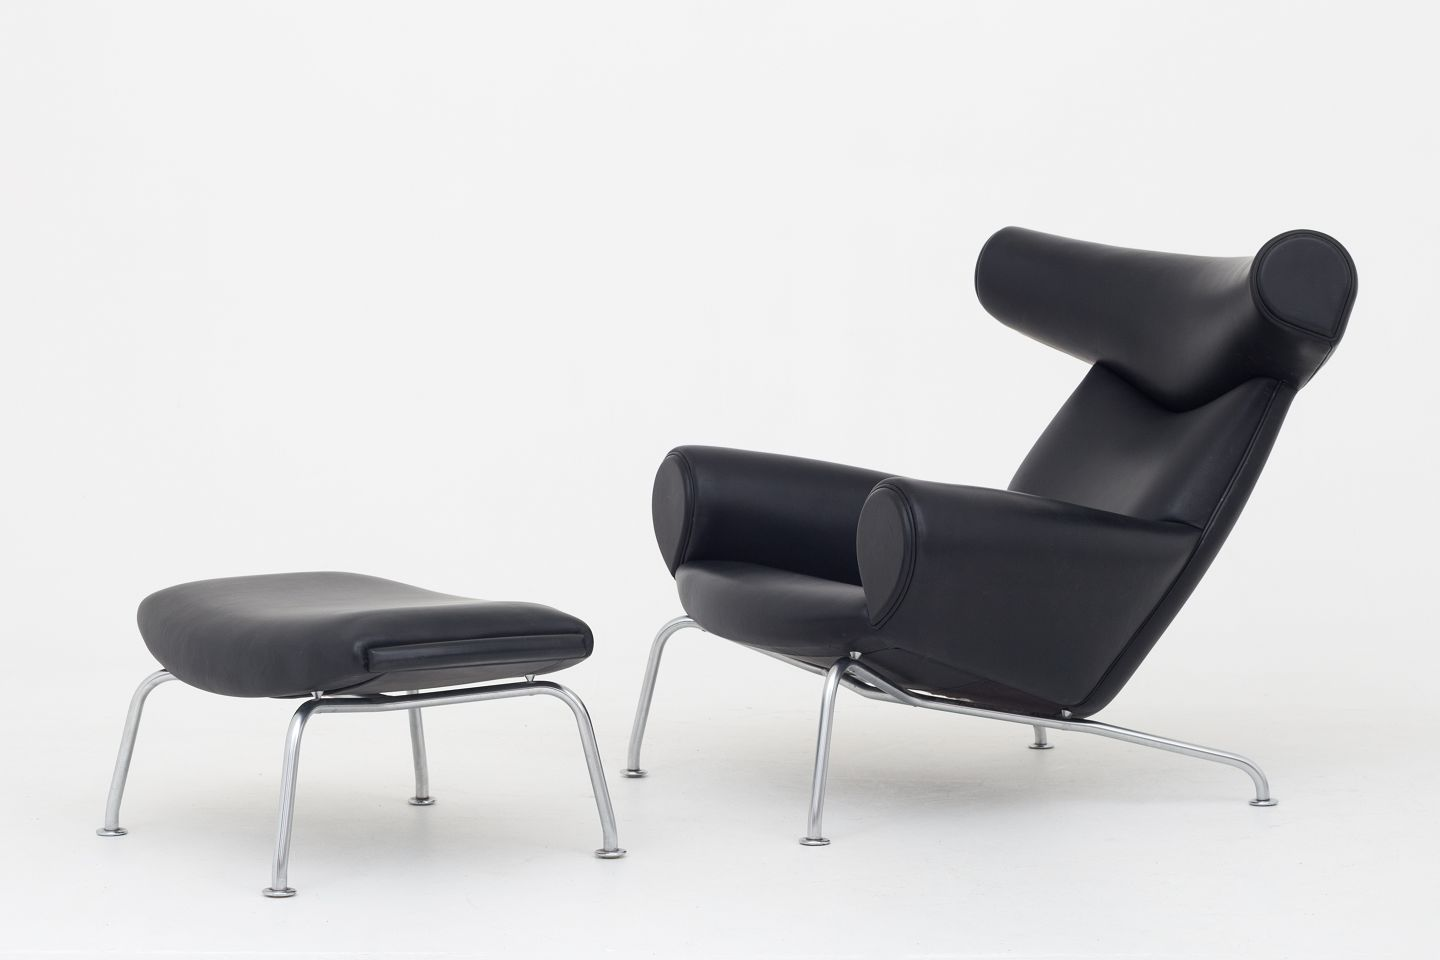 Hans J. Wegner / Erik Jørgensen EJ 100   Ox Chair Lounge Chair W. Footstool  In Black Leather And Steel Legs 1 Set In Stock. Good Condition